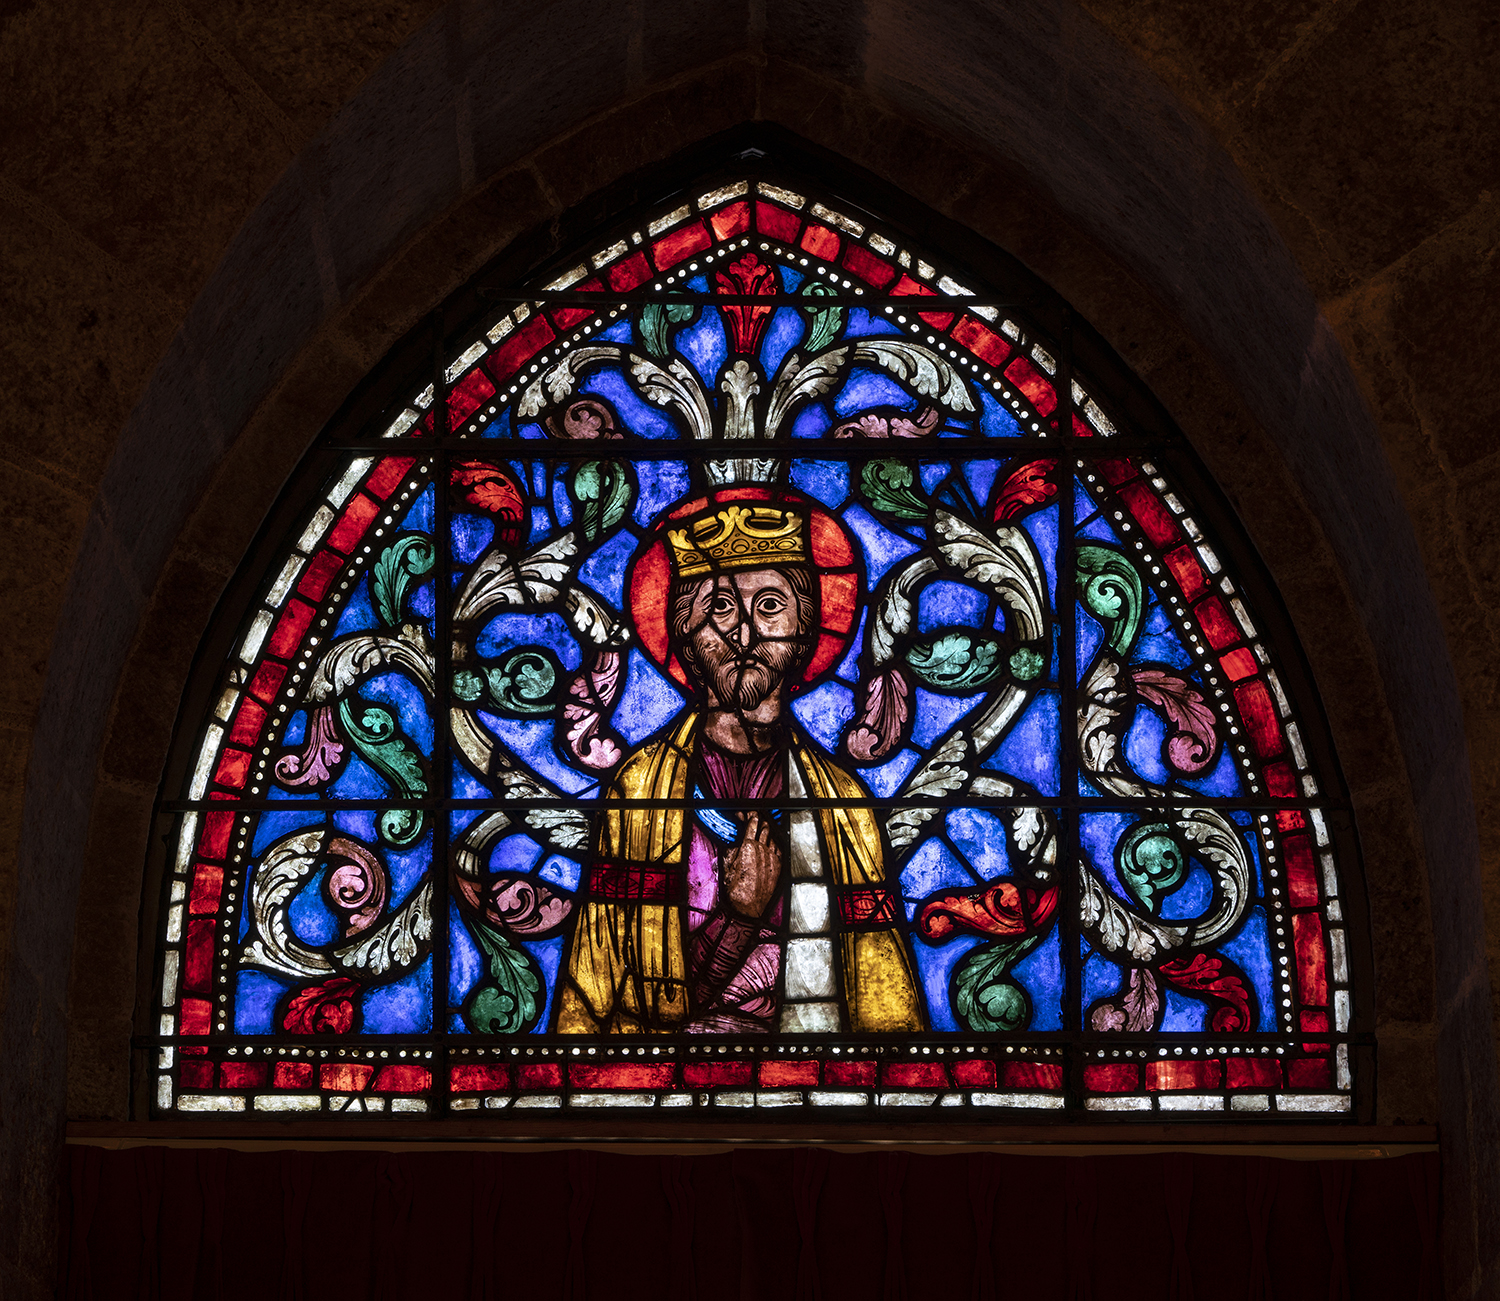 Figure 12: King from a Jesse Tree window, from the axial clerestory window of Soissons Cathedral, c. 1210-1225, now in Glencairn Museum (03.SG.229).